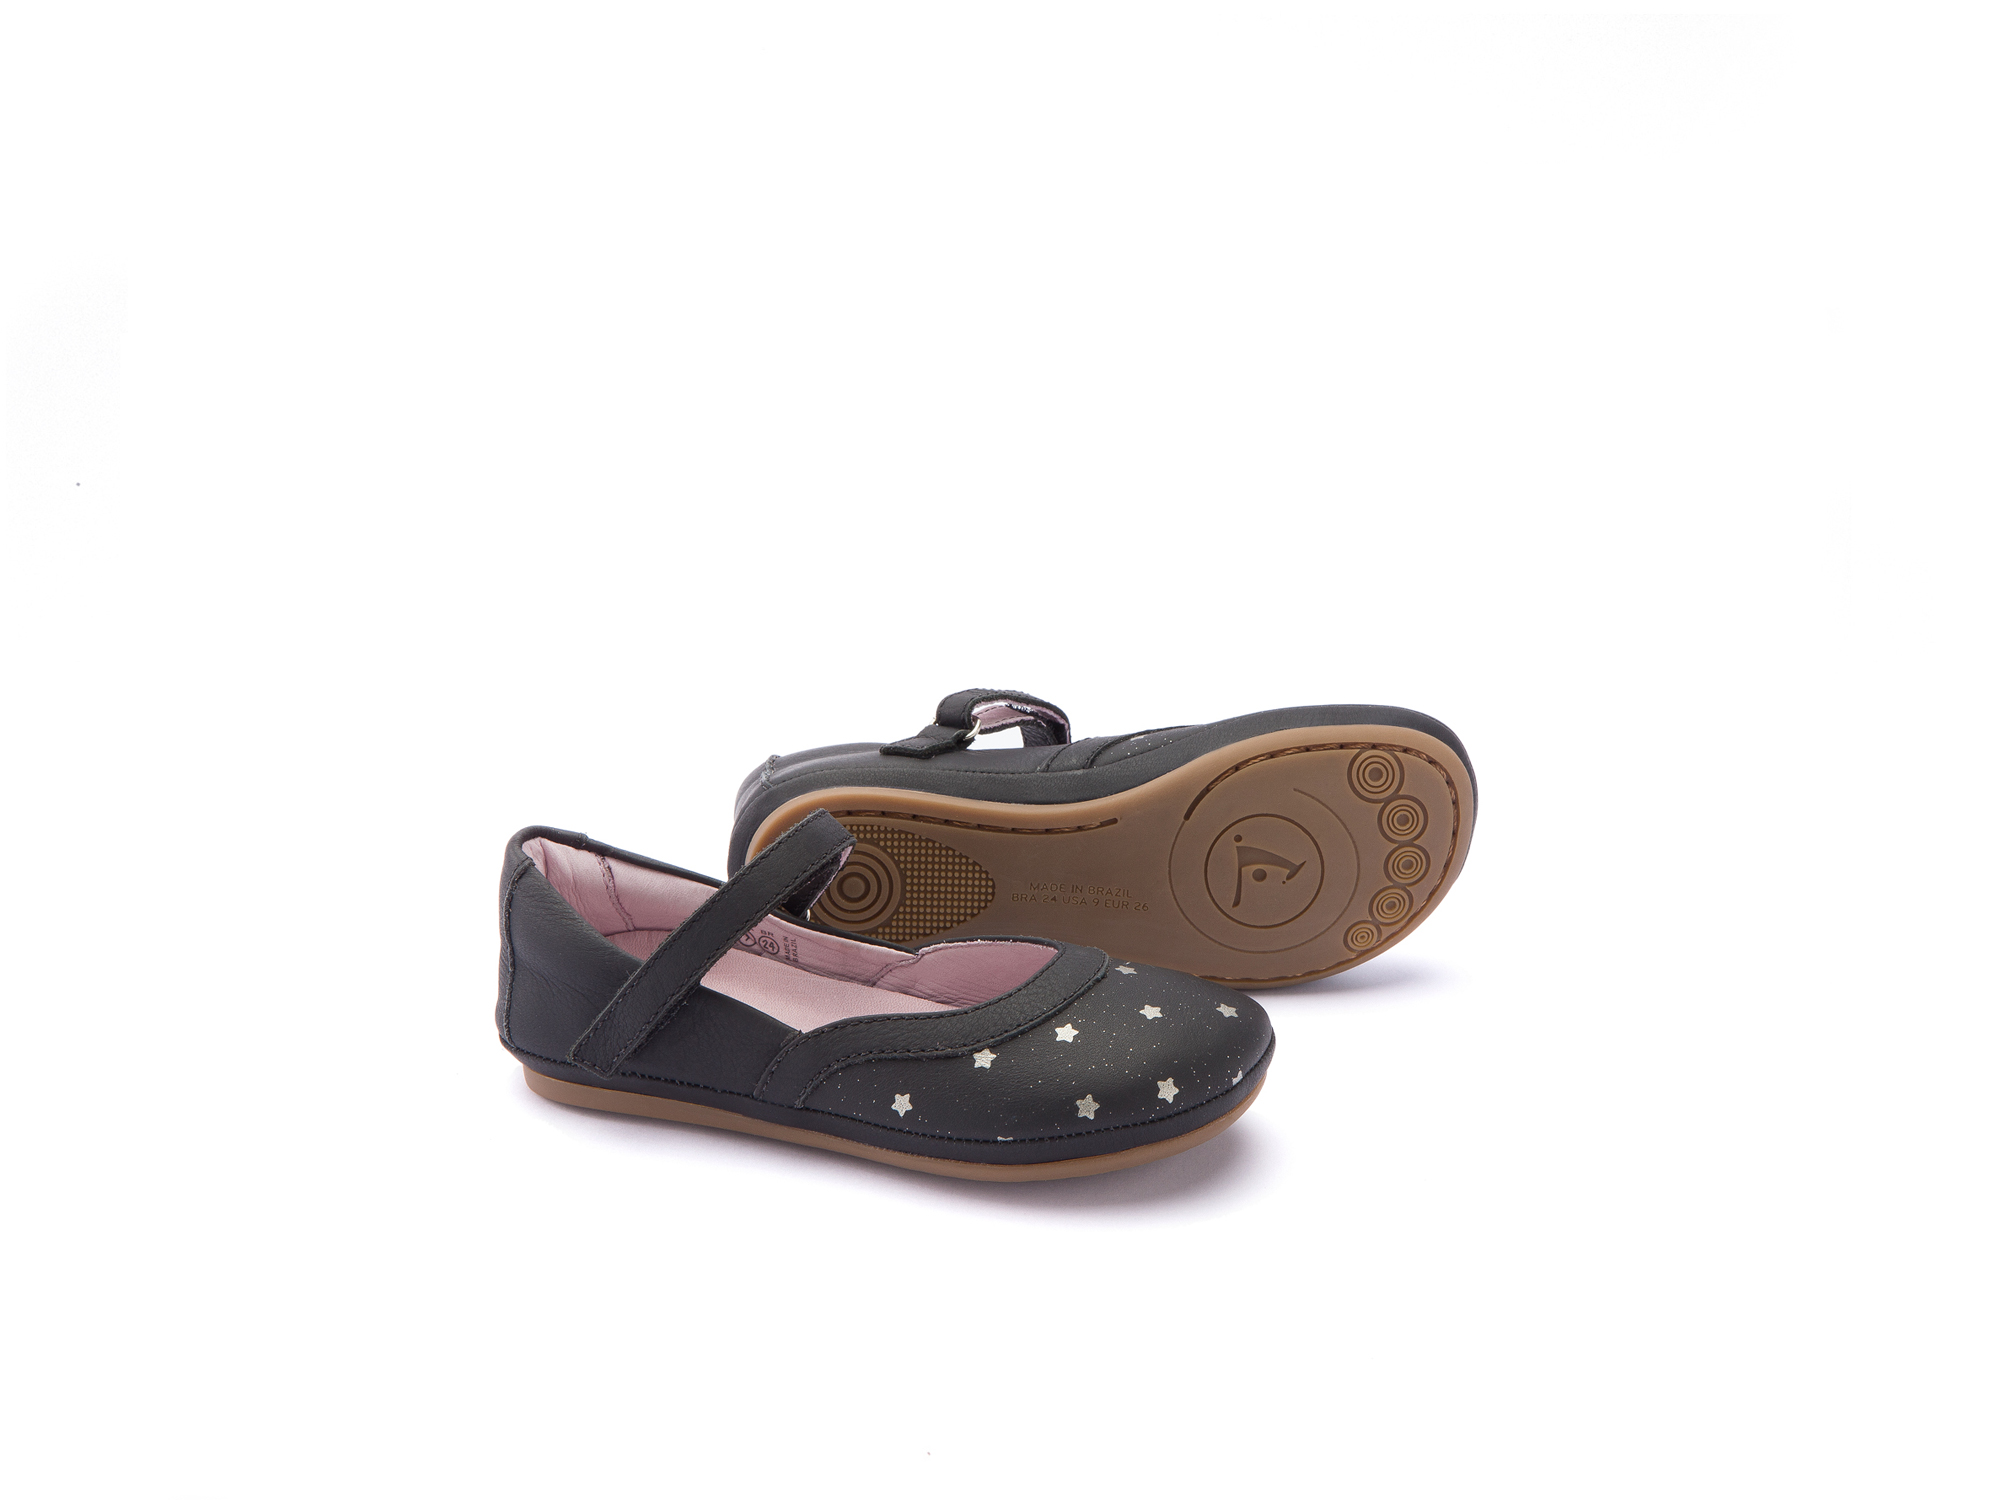 Boneca Little Cisne Black Stars/ Black Toddler 2 à 4 anos - 2